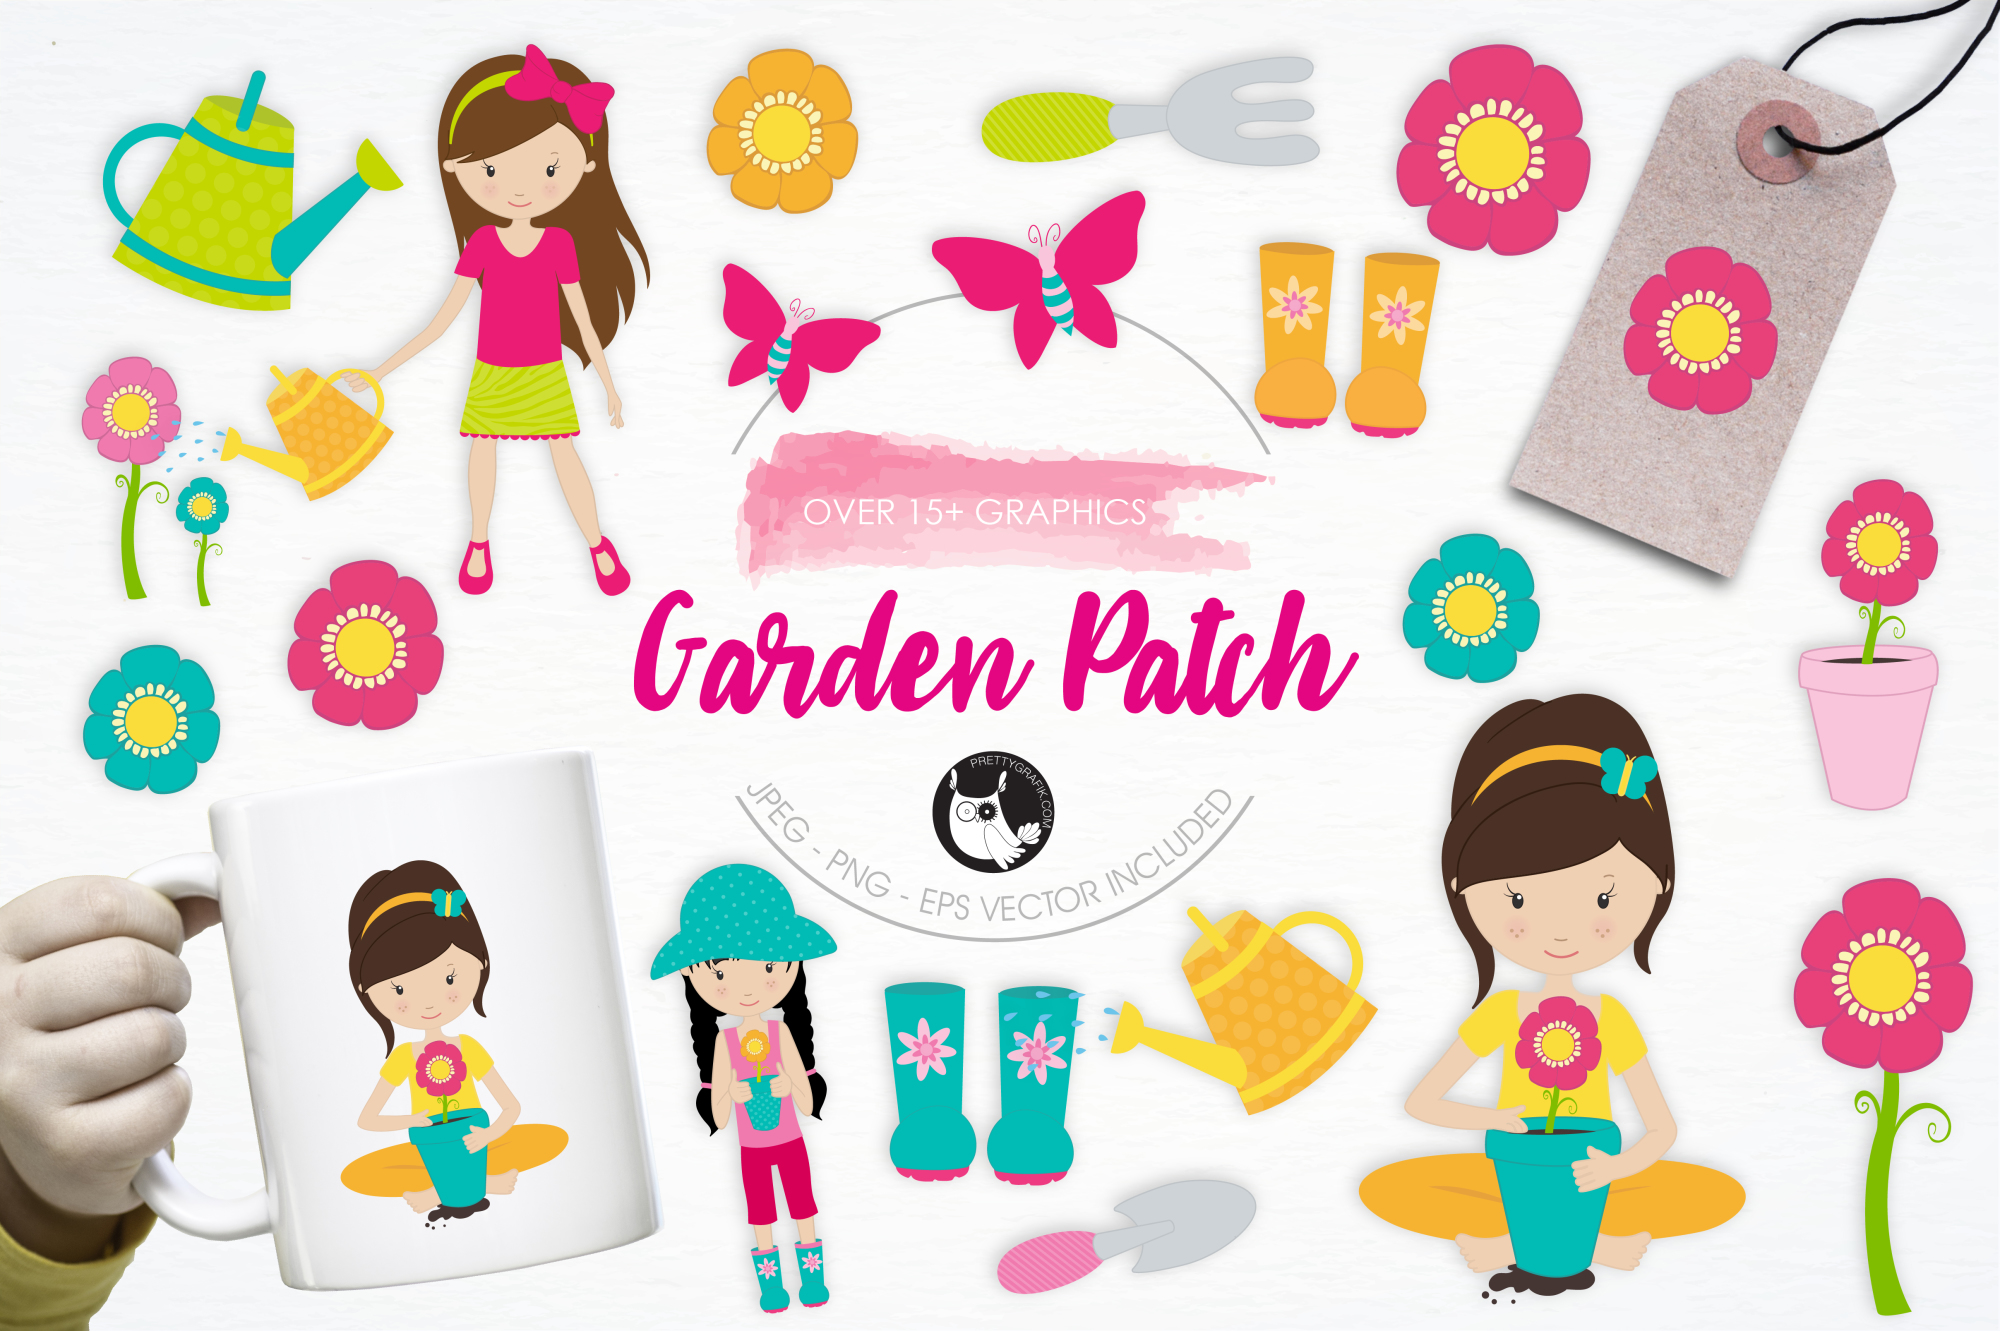 Garden Patch graphics and illustrations example image 1